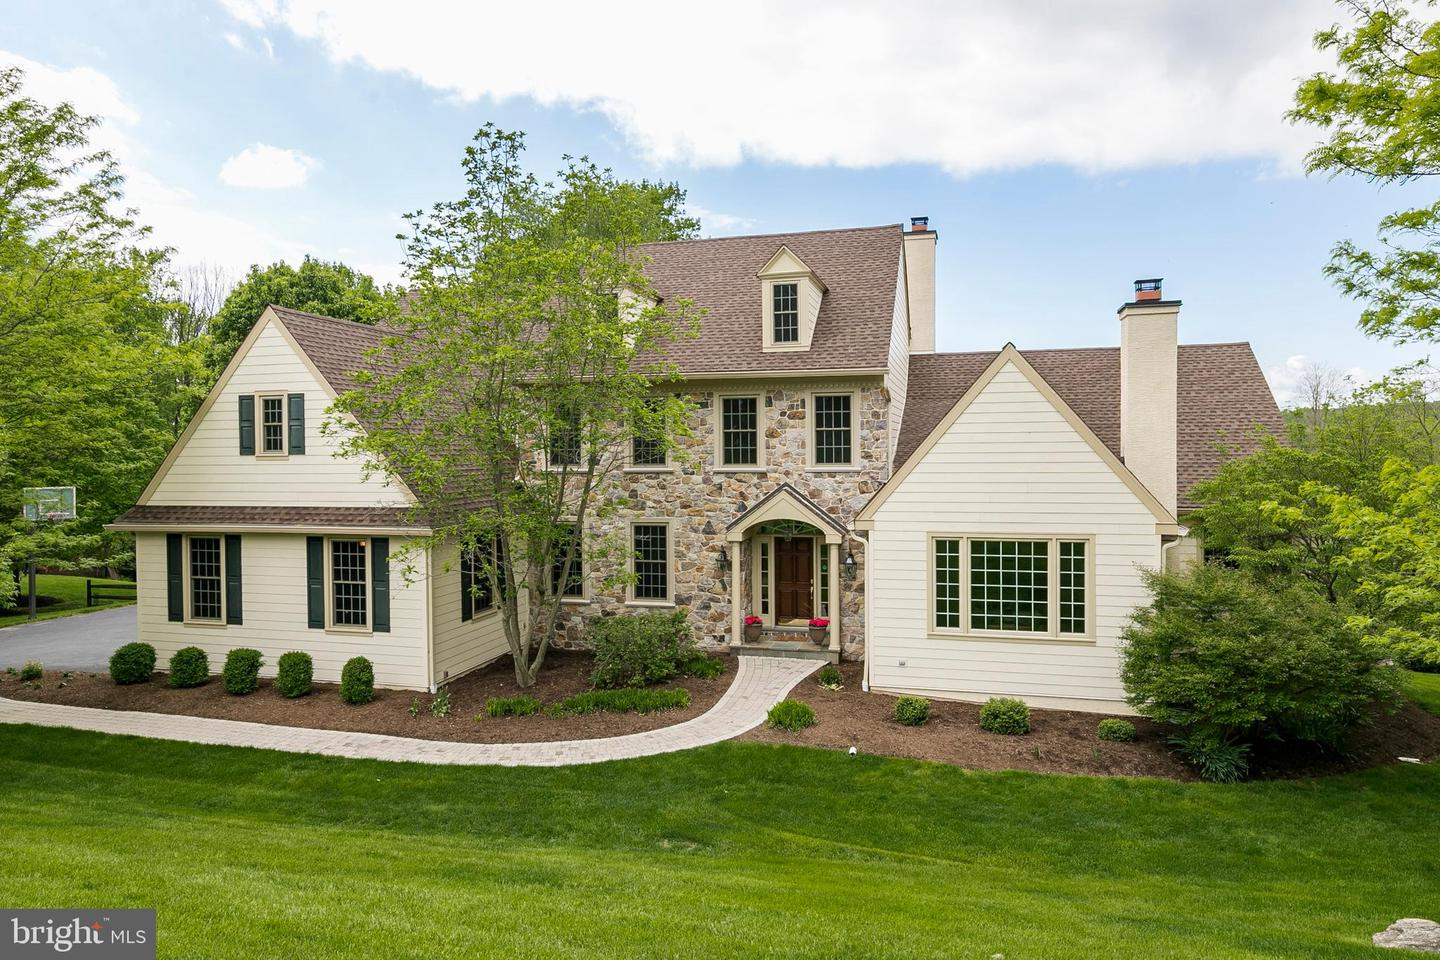 928 Copes Lane West Chester, PA 19380